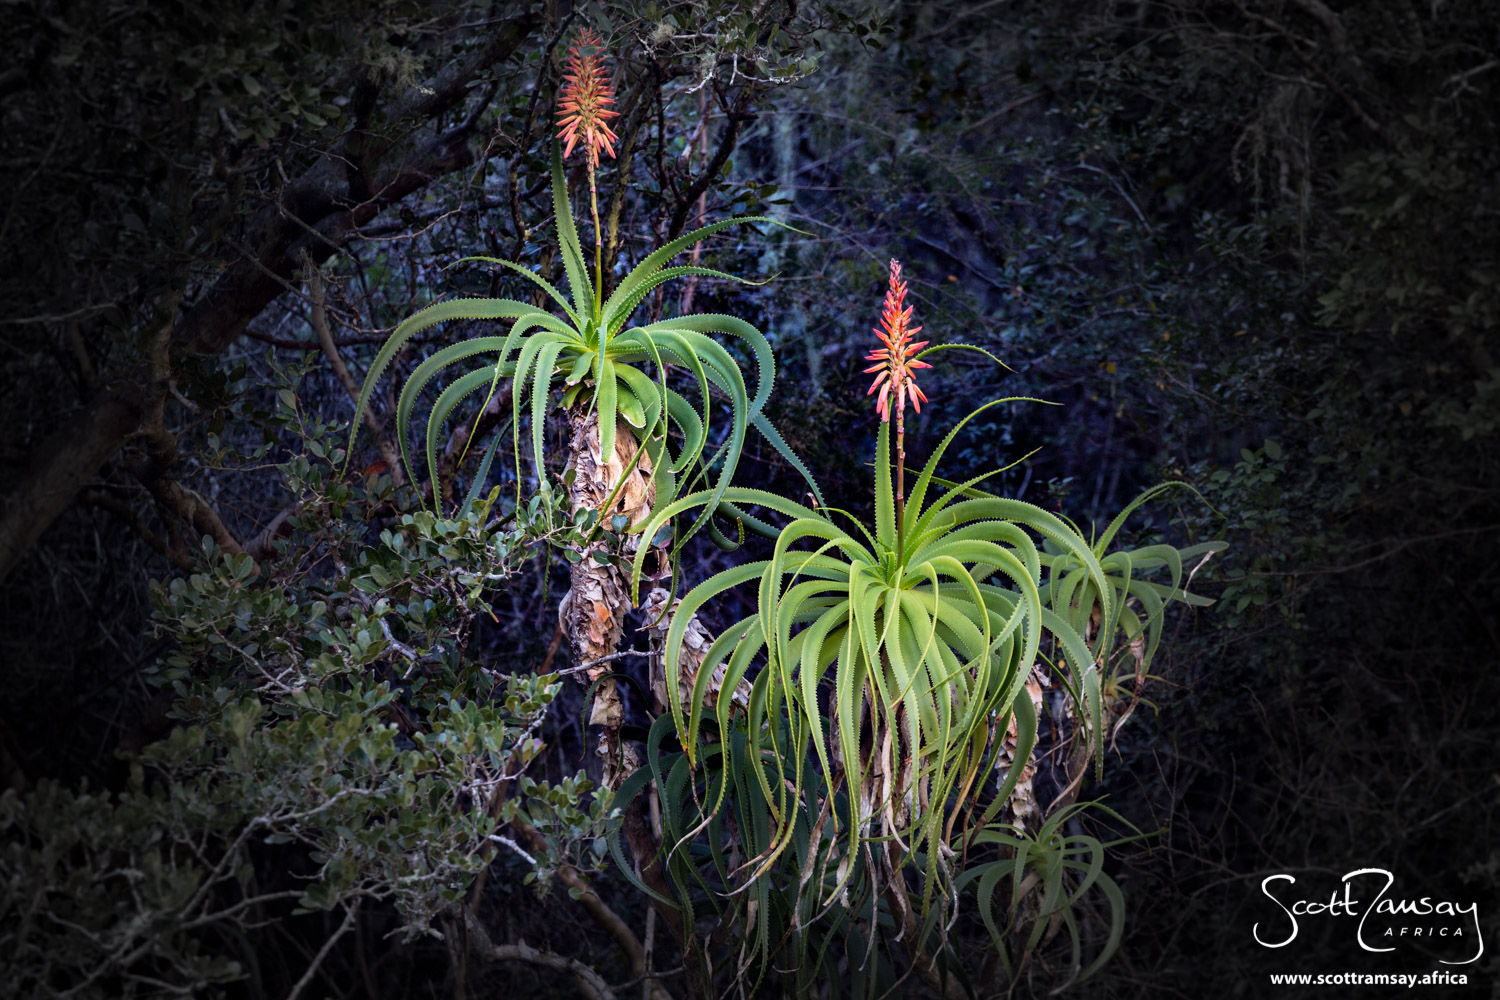 Flowering aloes on the slopes of the gorge...the wet winters call forth a riot of colour in the fynbos plant kingdom.